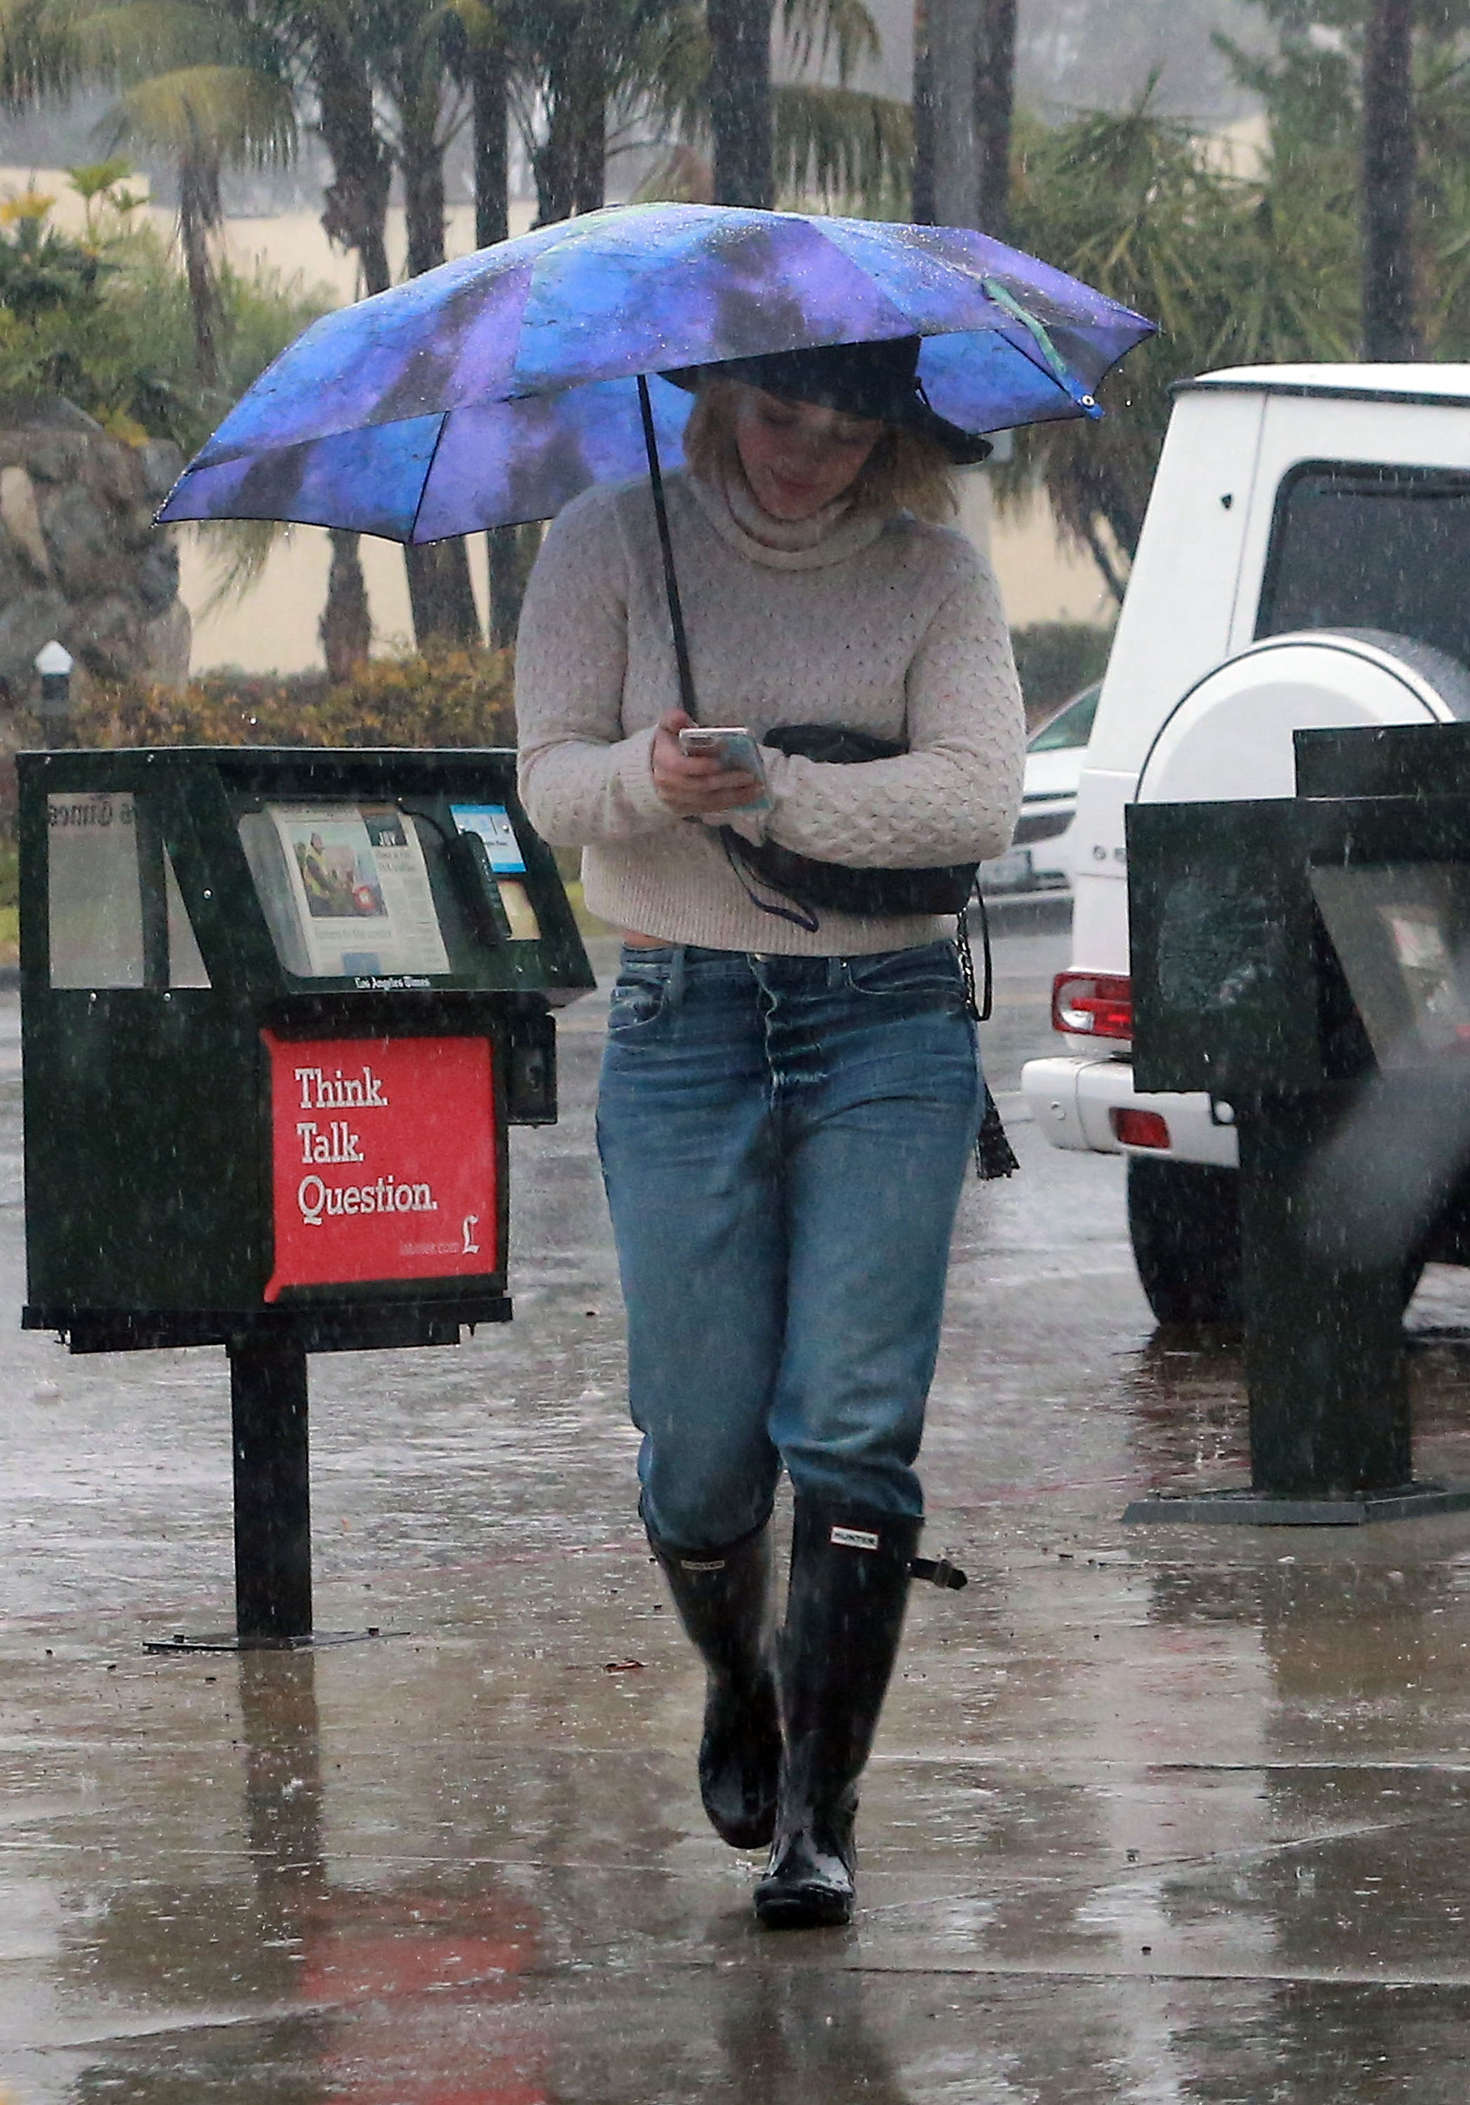 Hilary Duff 2016 : Hilary Duff in Jeans out on a rainy day -19